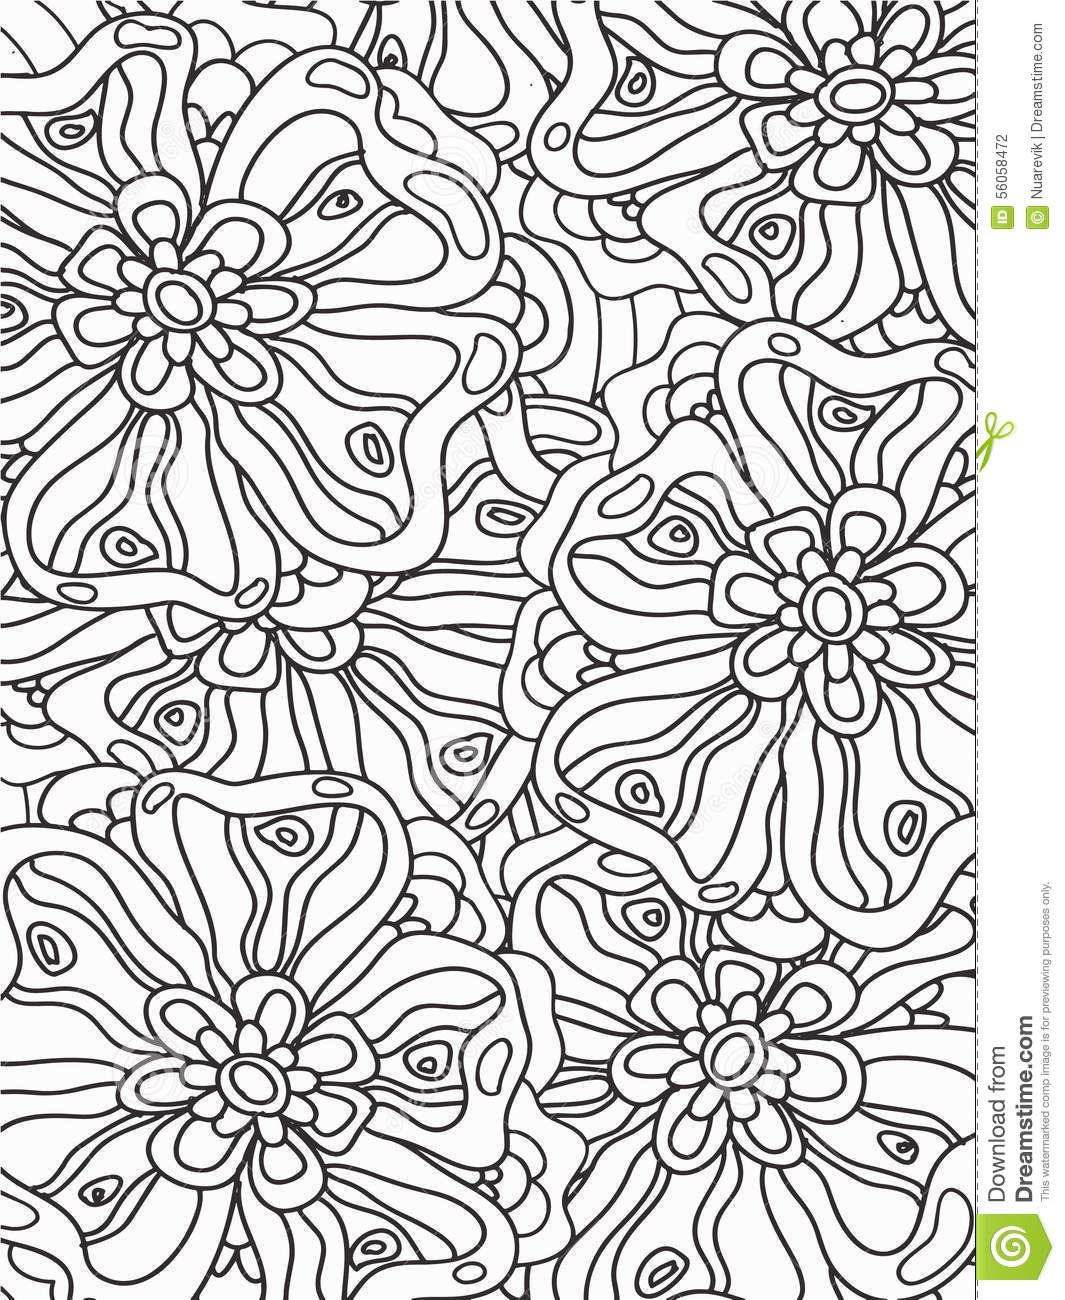 Zentangle images google search prints to color pinterest